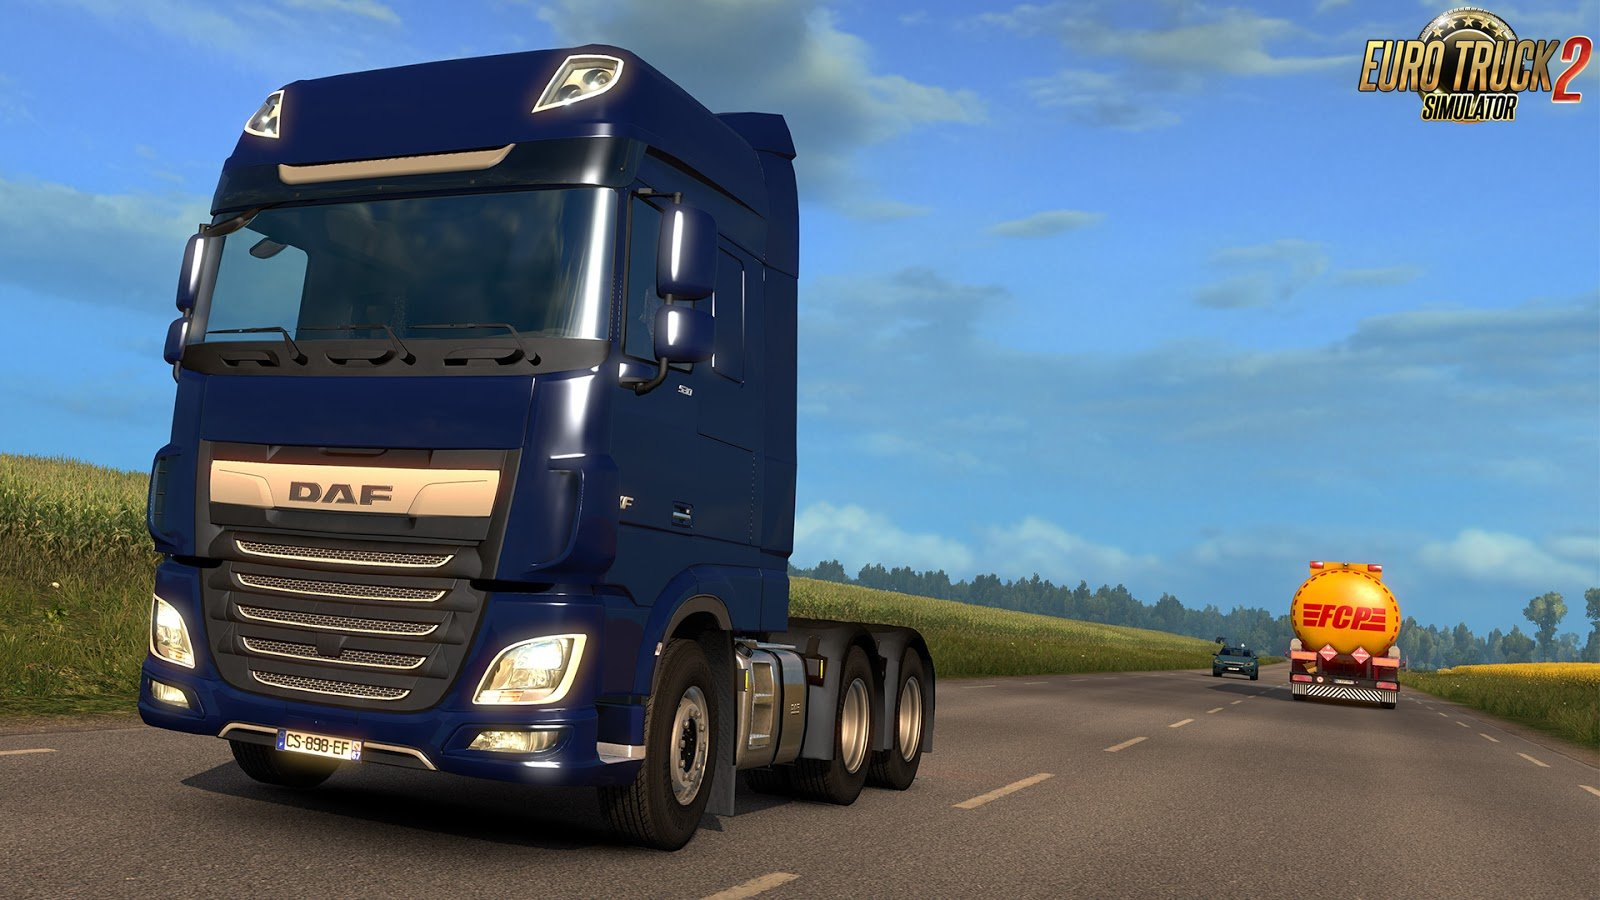 ETS 2 Update 1.28 was released